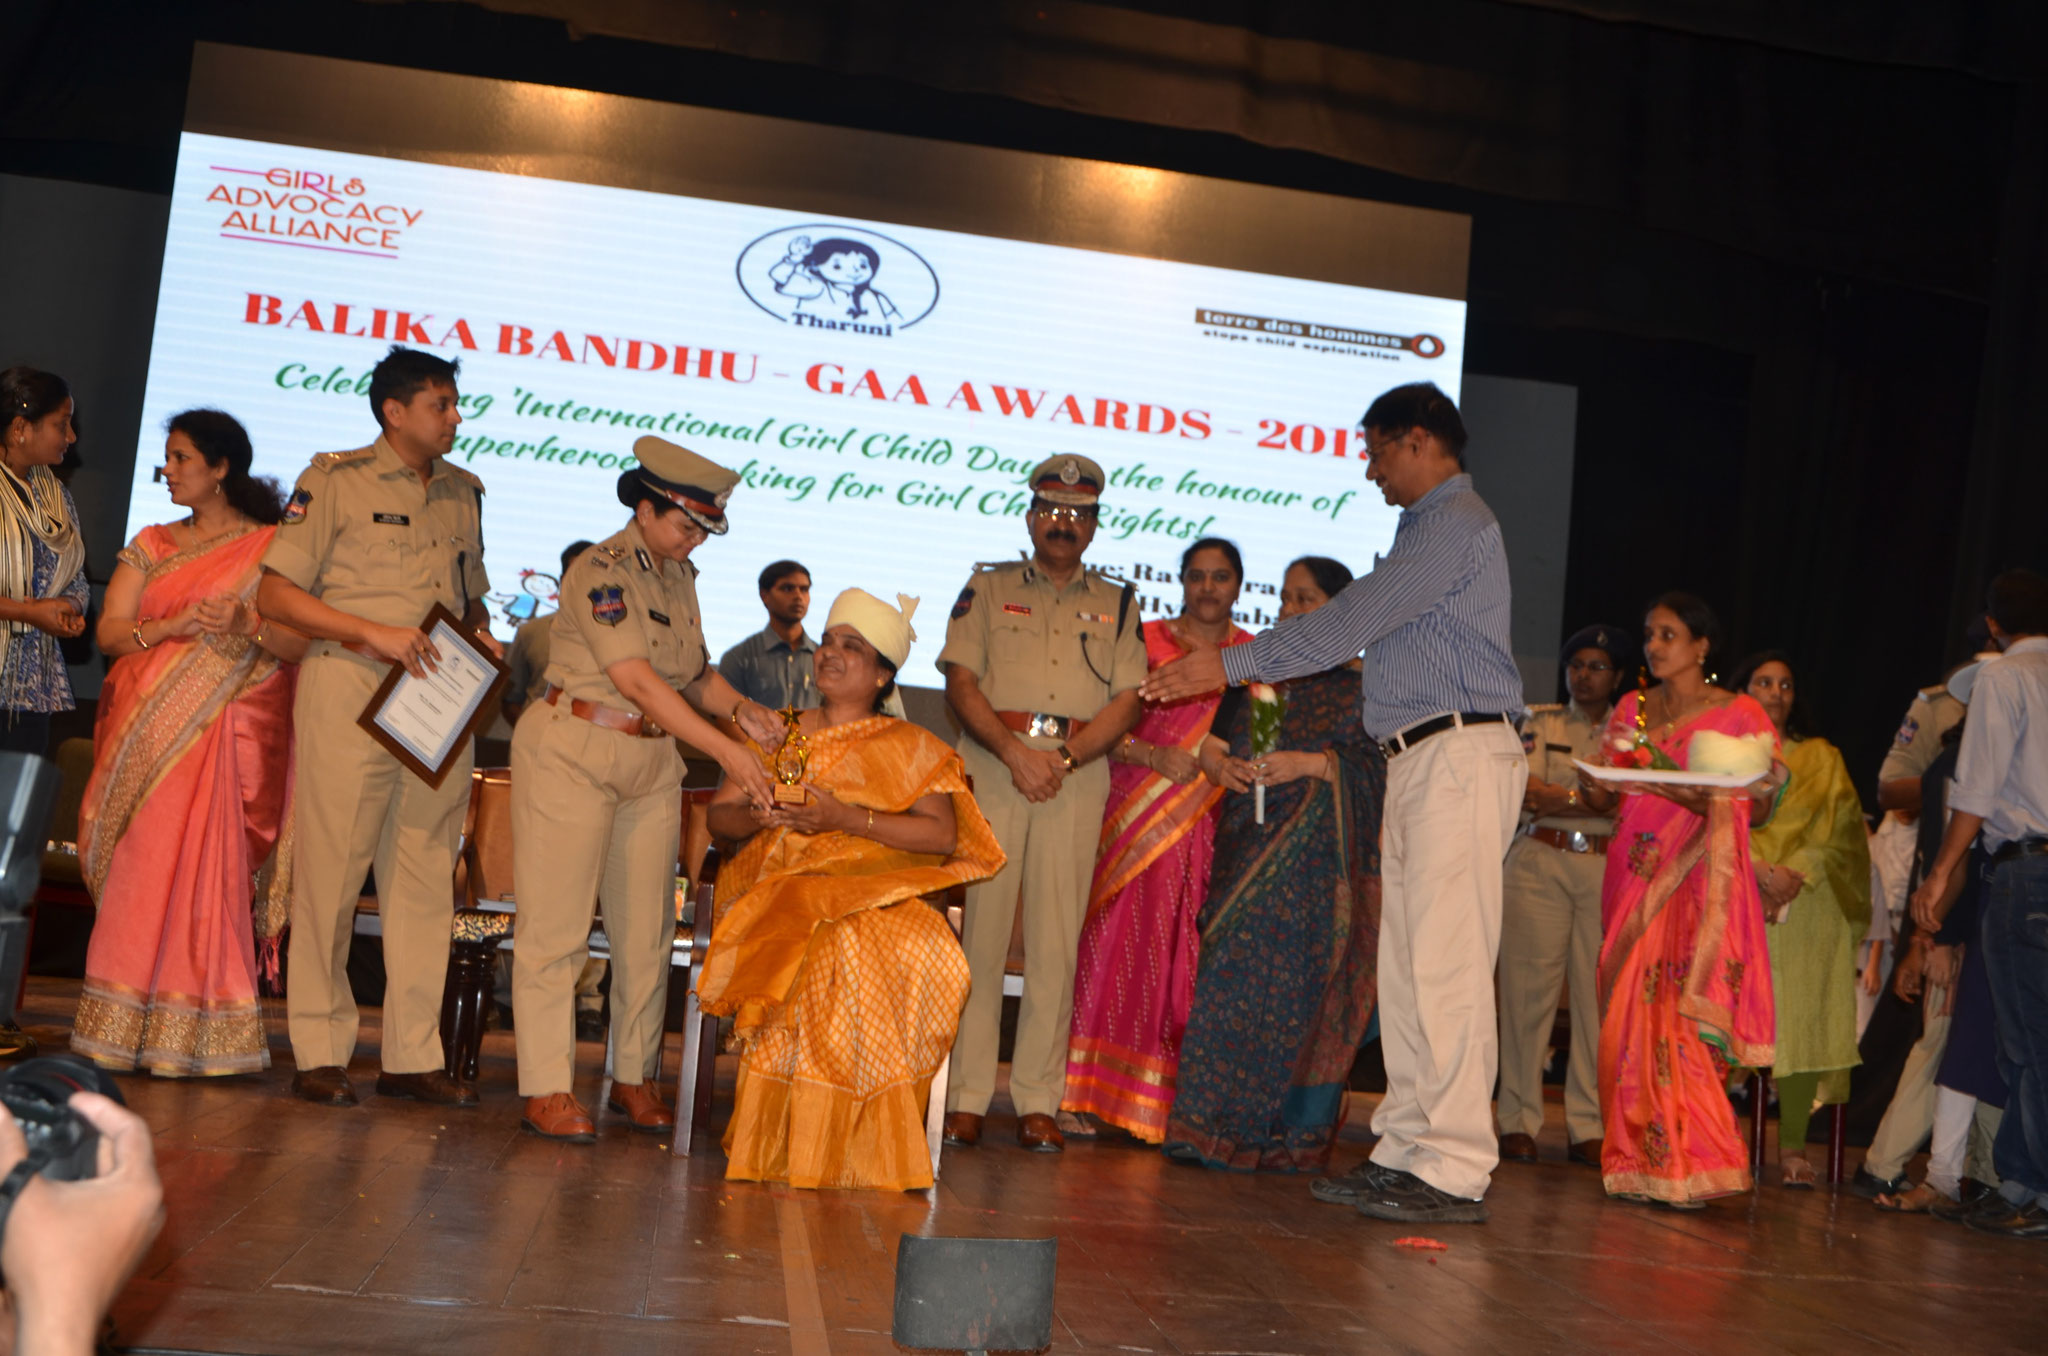 Balika Bandhu Gaa Award-2017 by the hands of Sri.Mahender Reddy,IPS,Commissioner Of Police-Hyderabad,Ms.Swathi Lakra,IPS,Addl.Commissioner of Police,Hyderabad and Others on the occasion of International Girl' Child Day observed at Ravindra Baharthi ,Hyd.